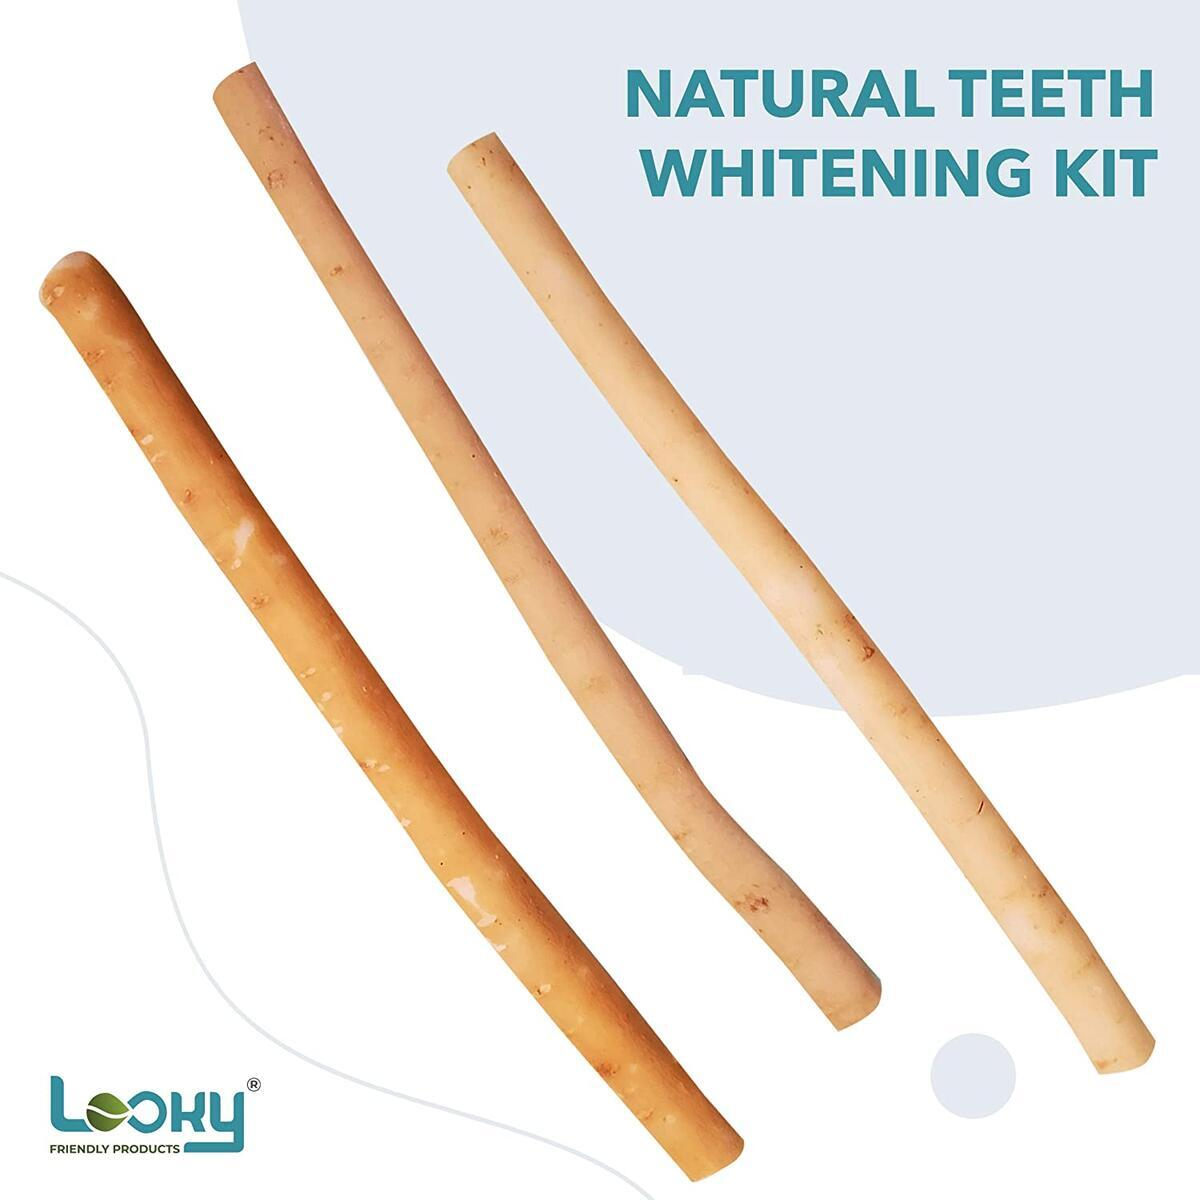 LOOKY 3 Pack Natural Teeth Whitening & Toothbrush kit No Toothpaste  Strong Gums and Fresher Breath with Bamboo Holder